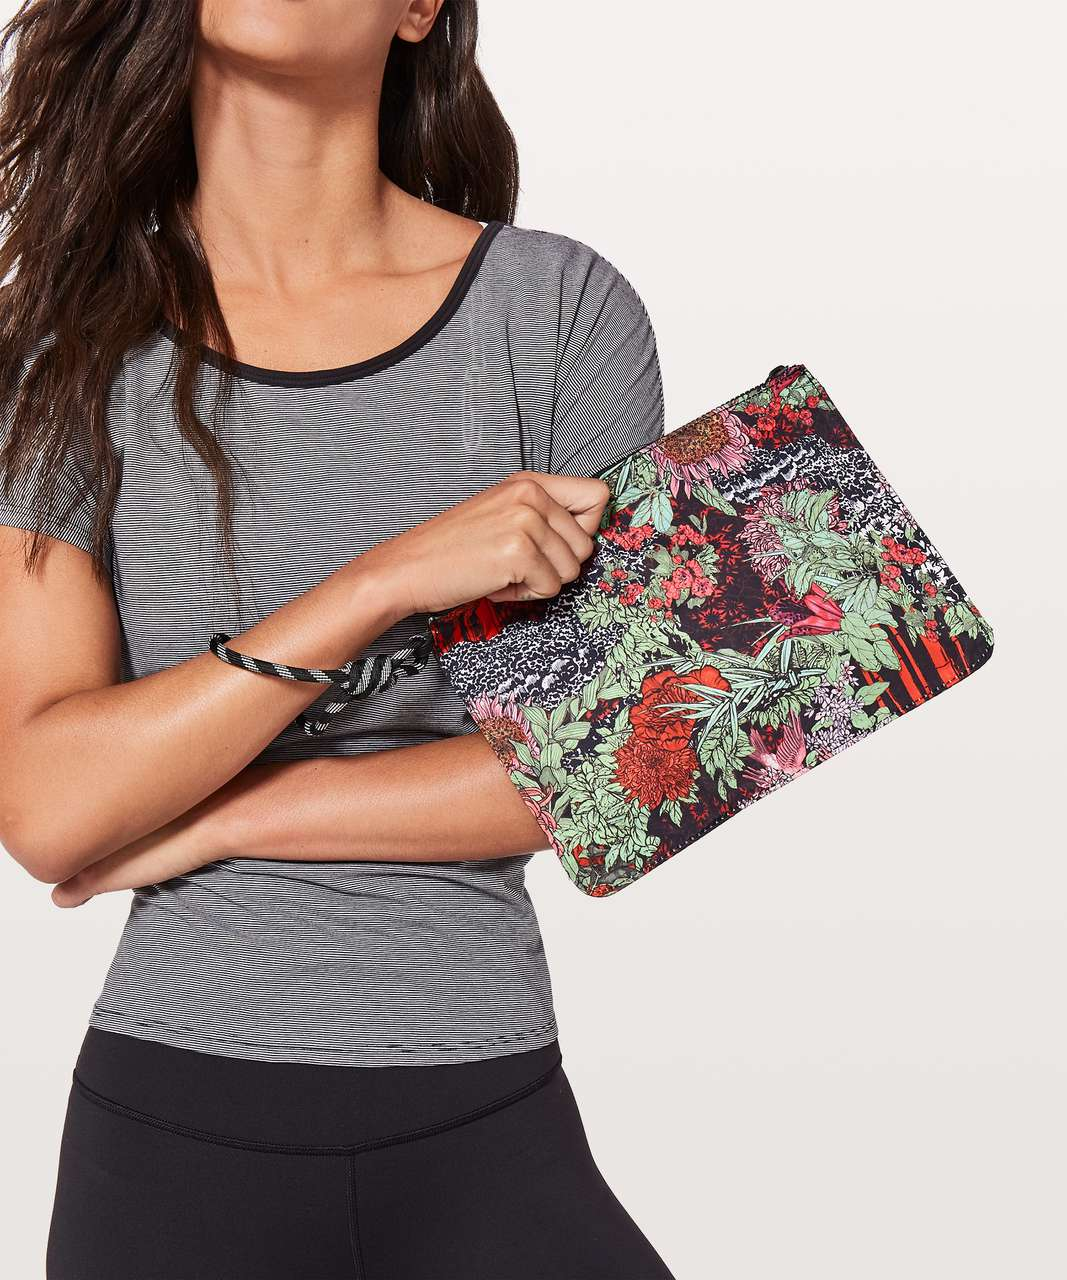 Lululemon All Zipped Up Pouch - Zen Garden Multi